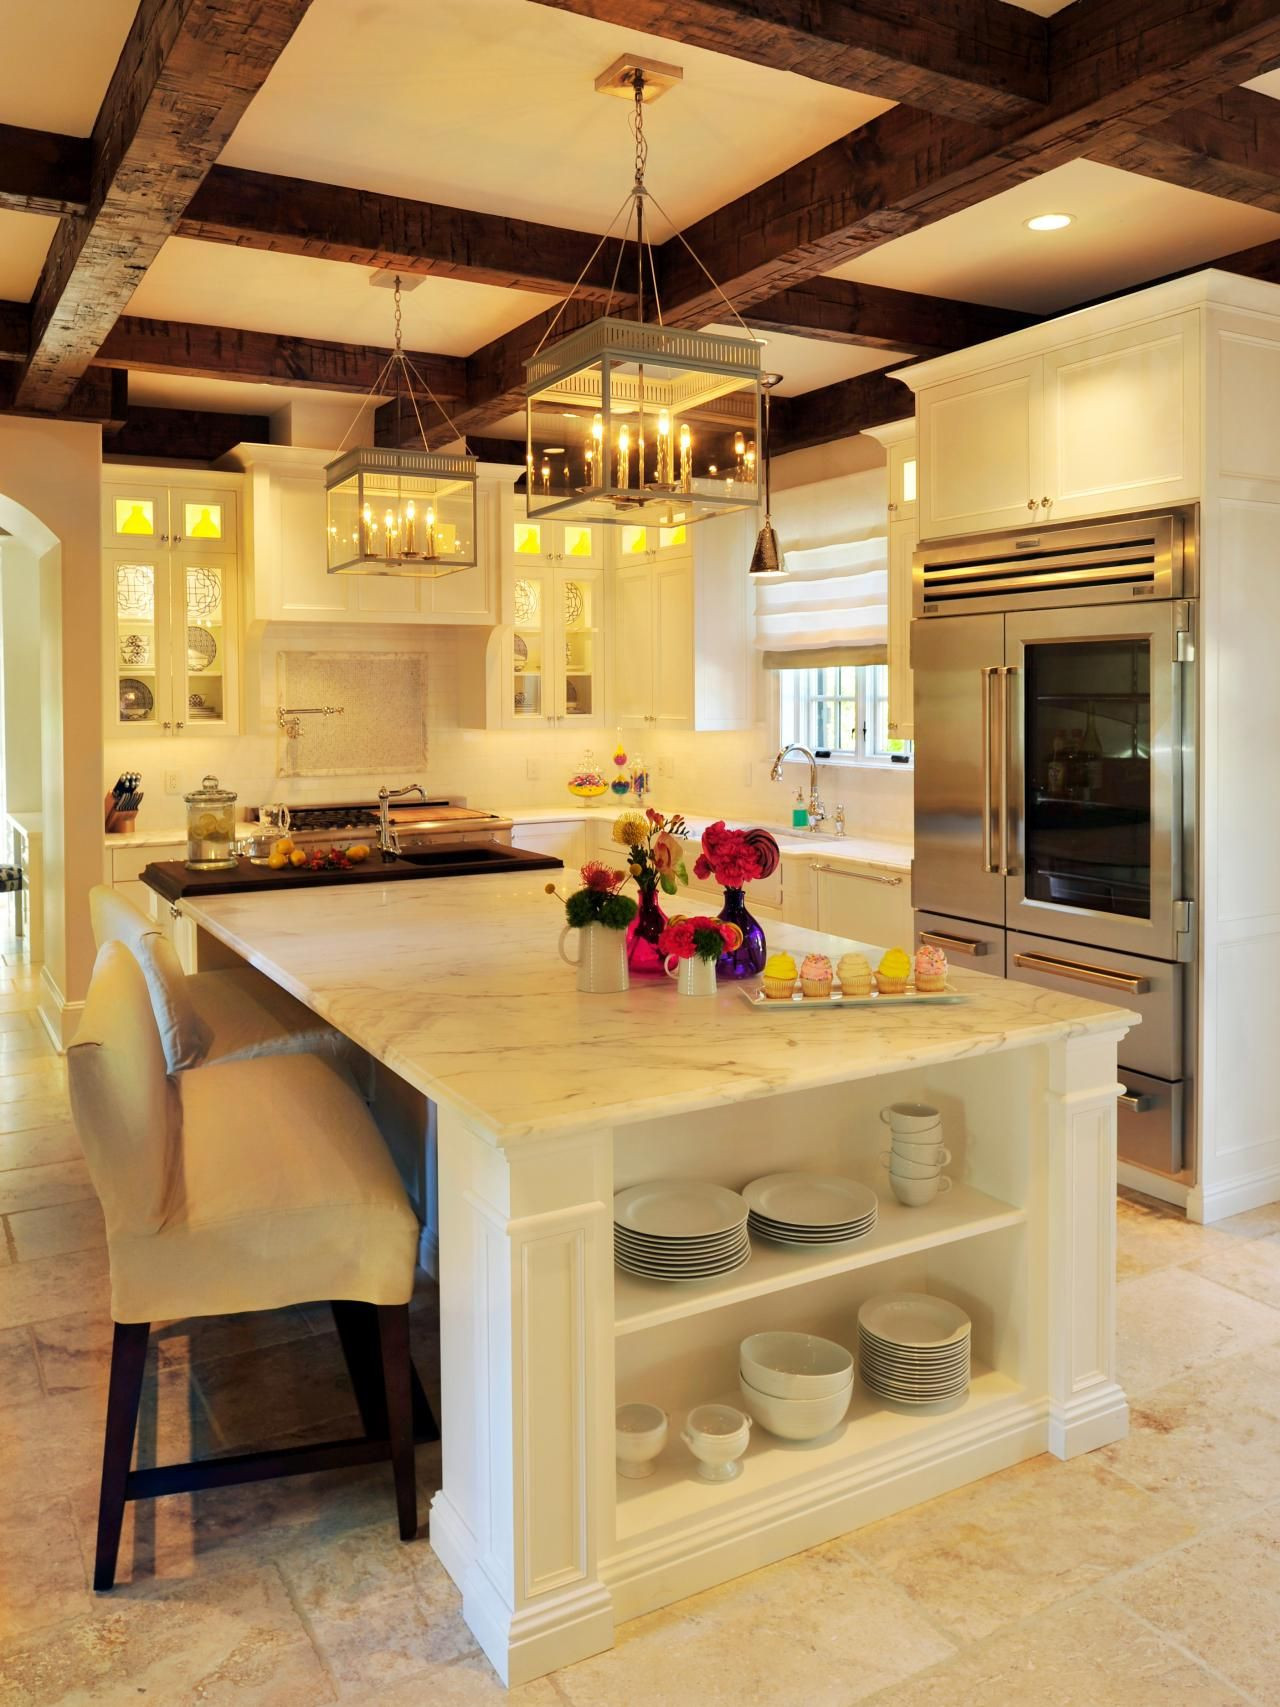 Uncategorized Exposed Wooden Beams this open old world style kitchen features a beautiful marble island exposed wooden beams and